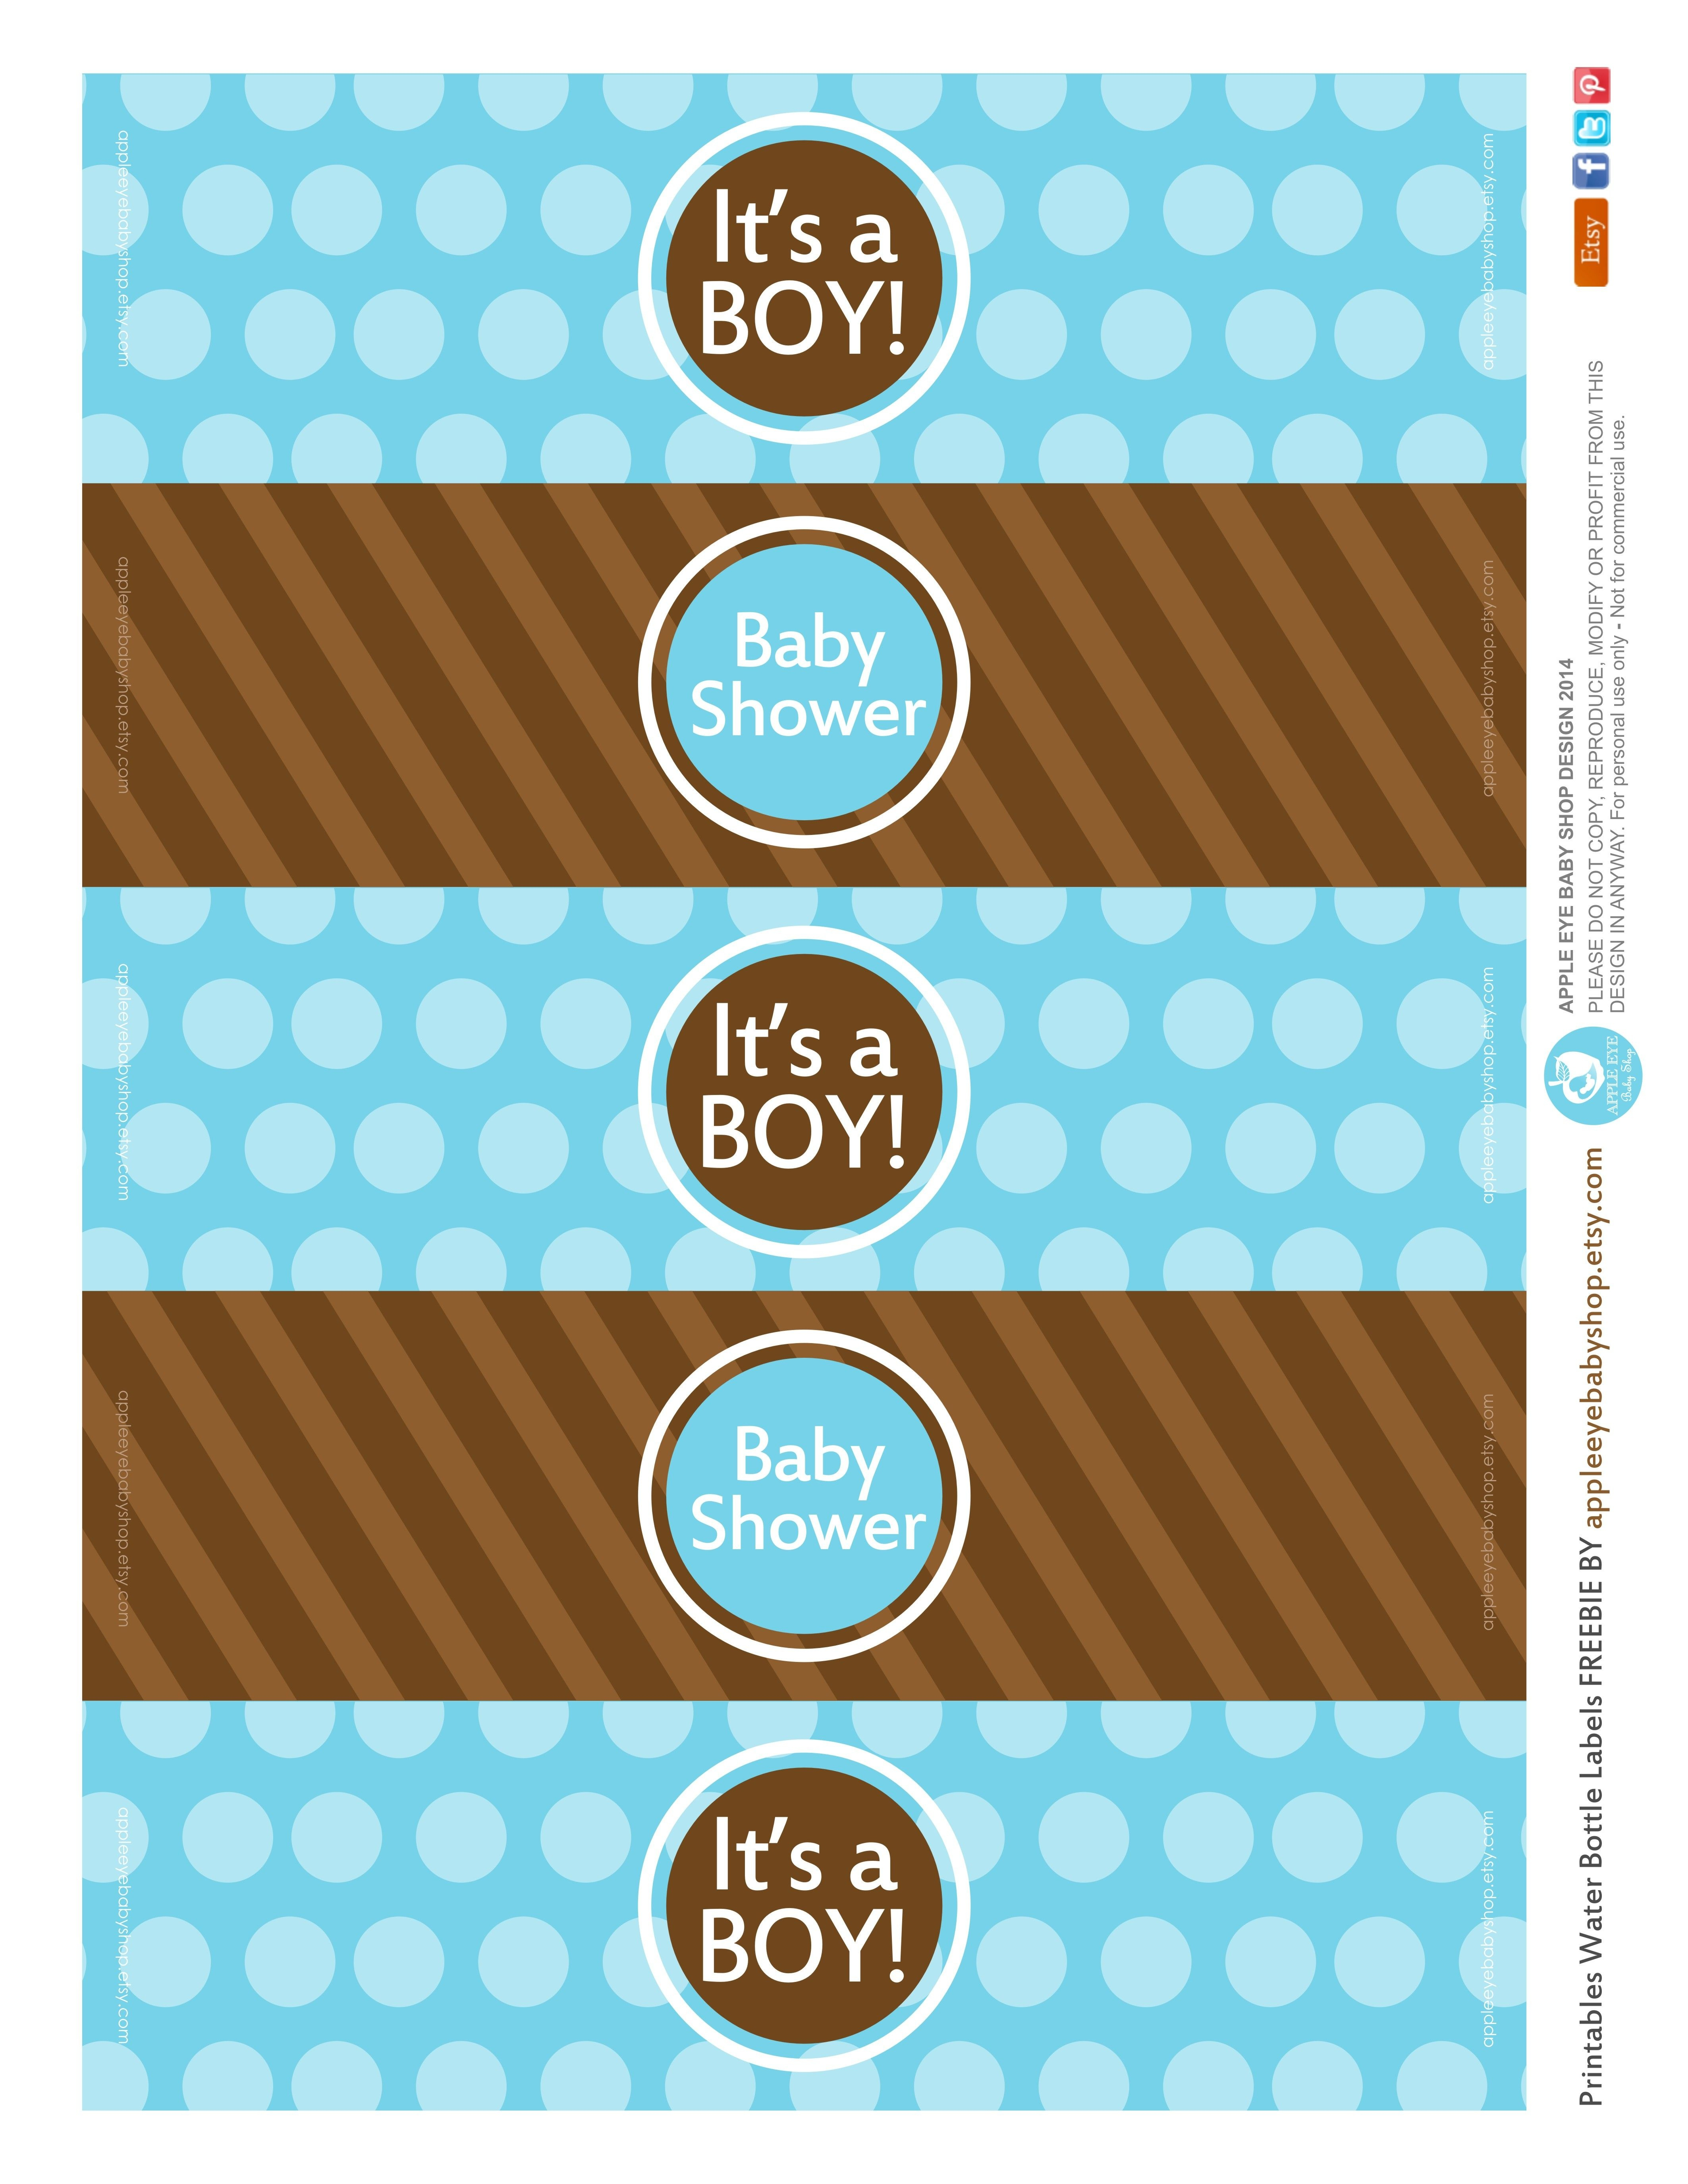 All Sizes | Free Printable | Water Bottle Labels Baby Boyapple - Free Printable Water Bottle Labels For Baby Shower